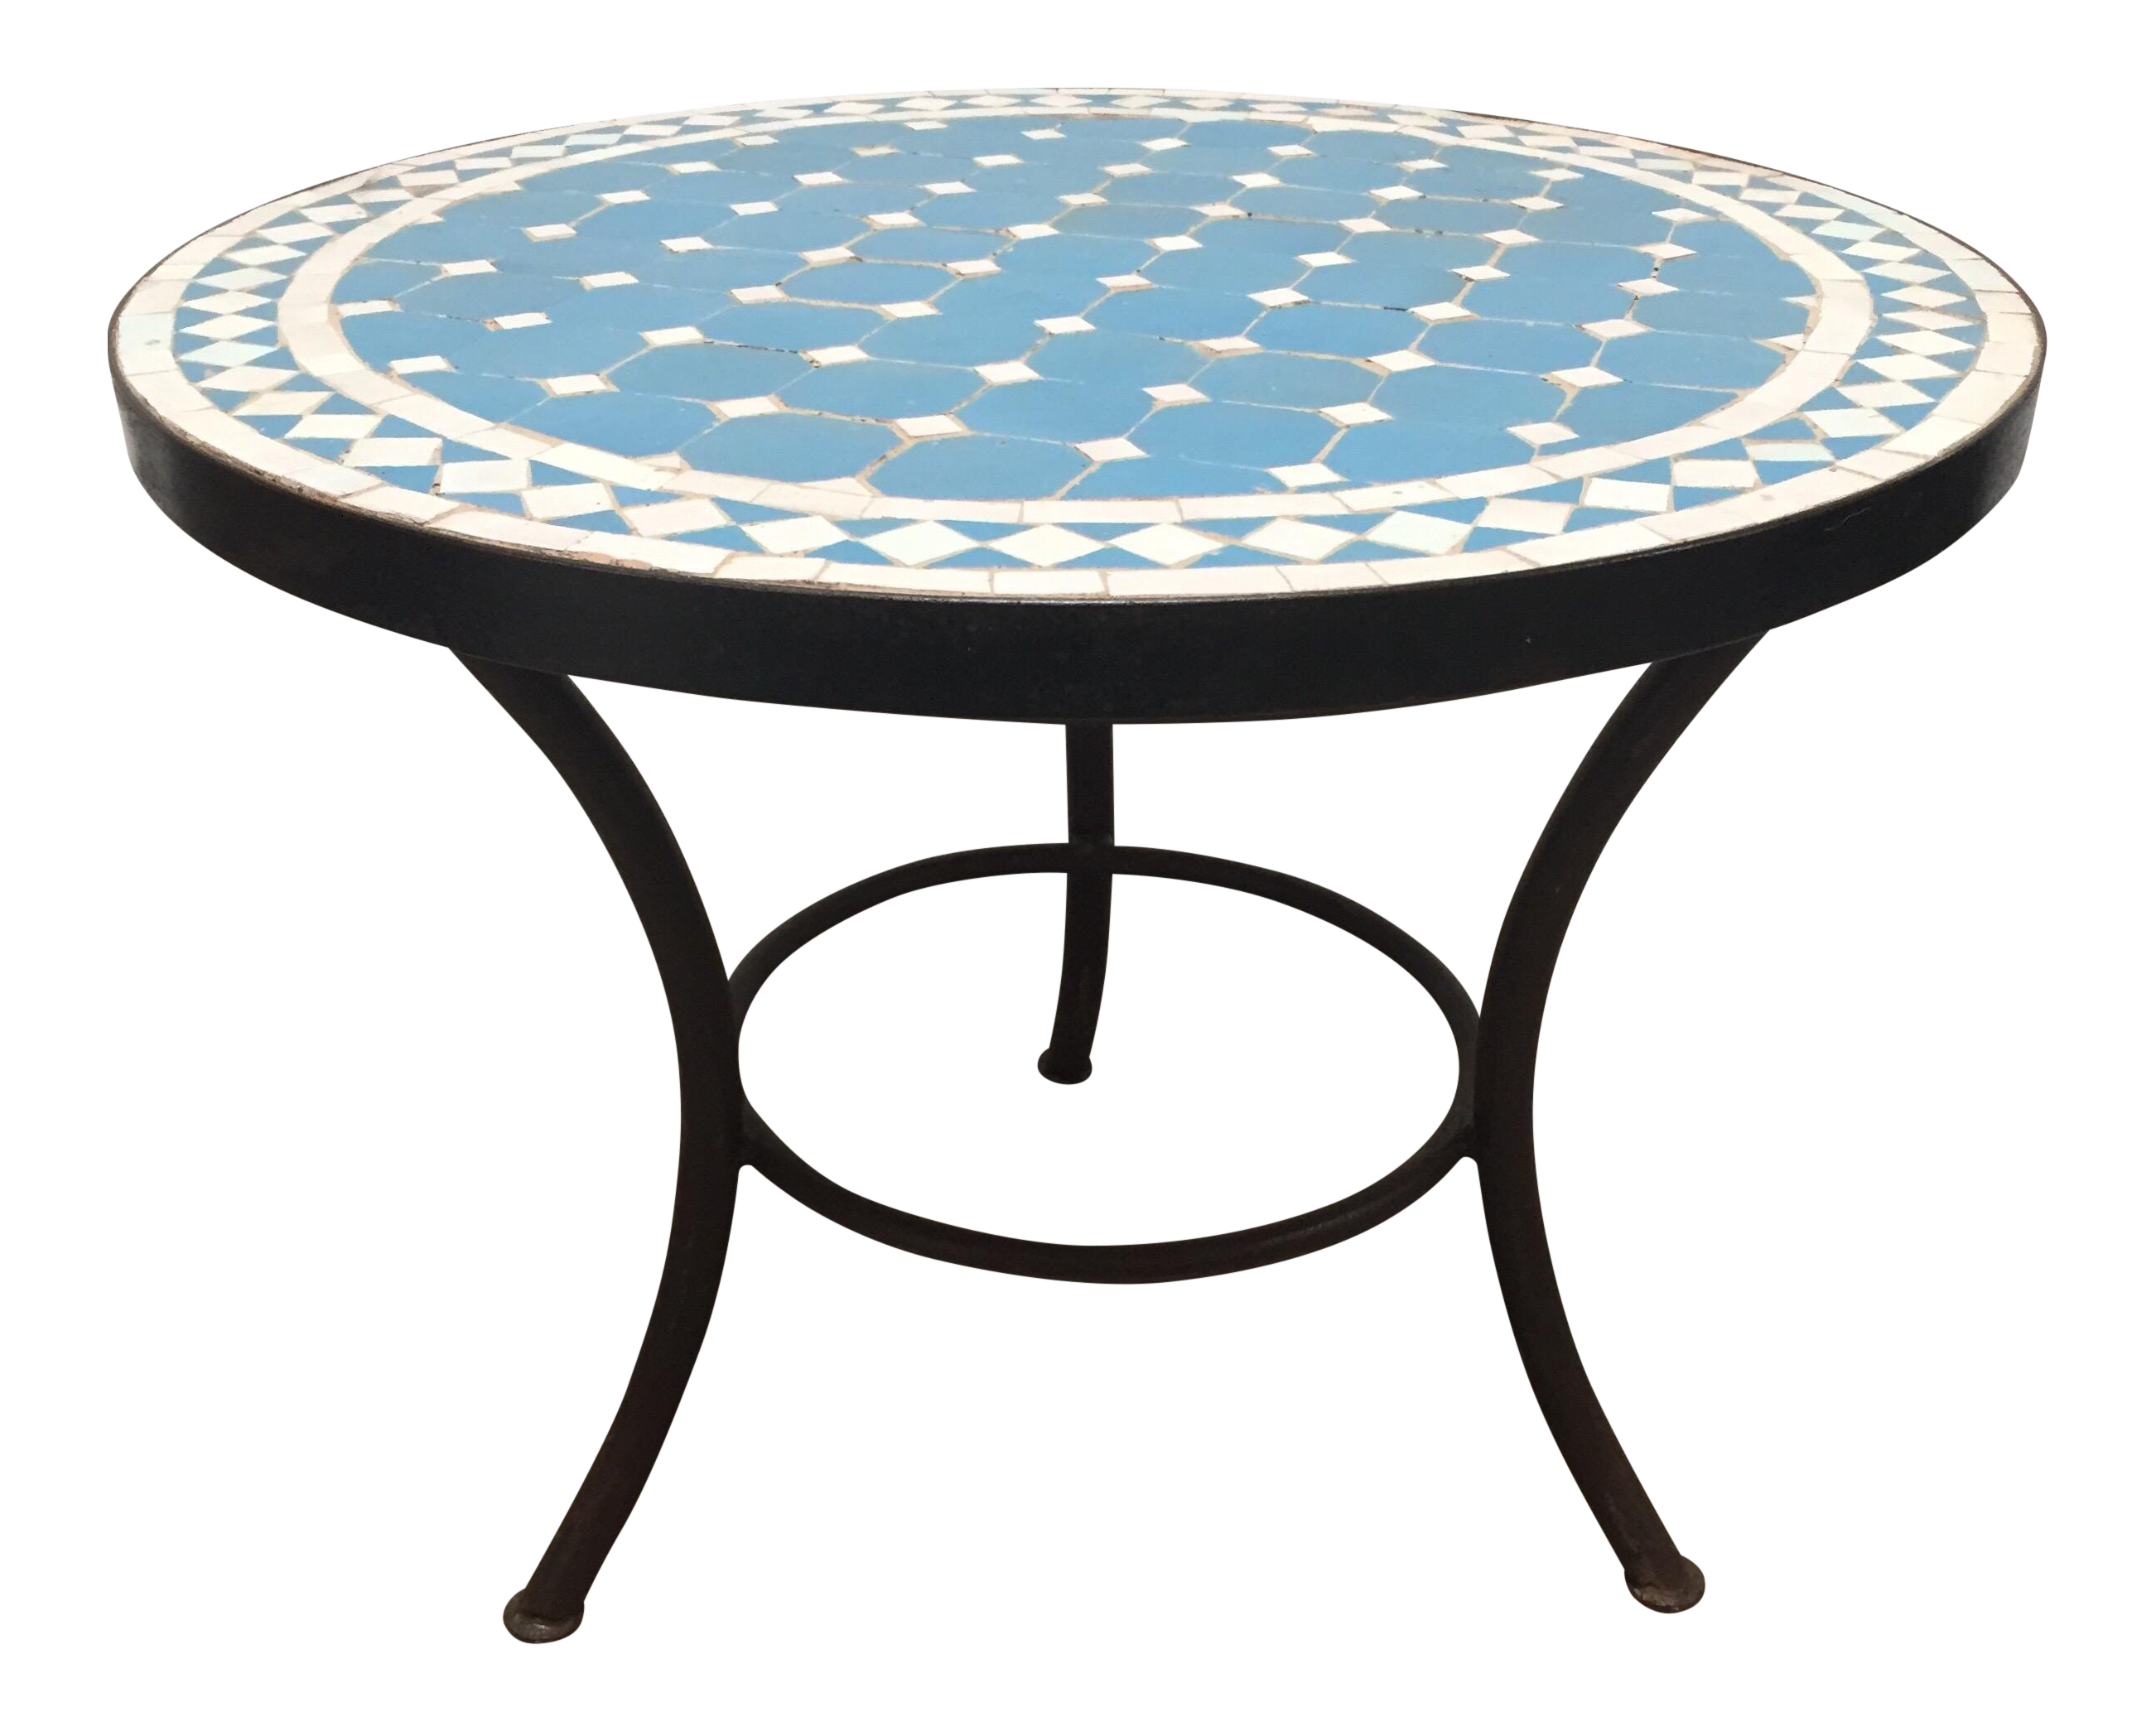 Superb Moroccan Mosaic Outdoor Blue Tile Side Table On Low Iron Base